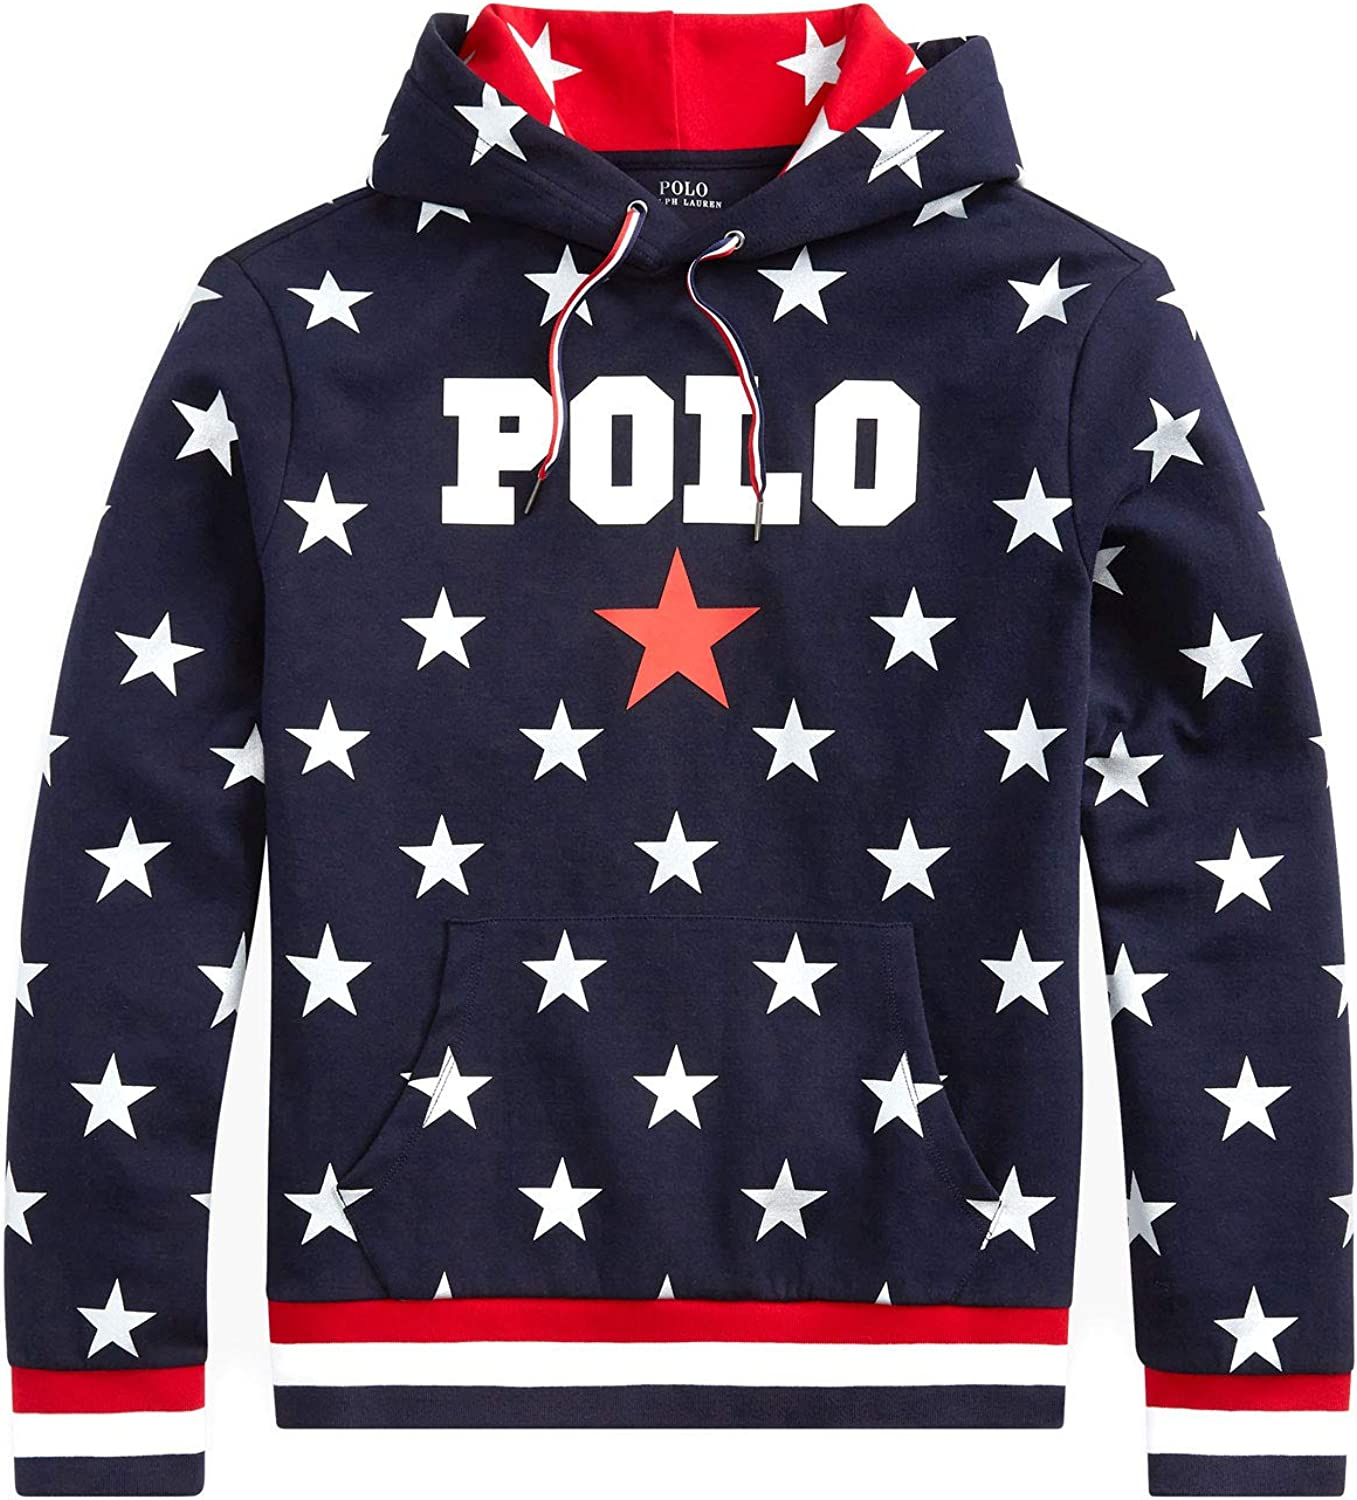 Polo Ralph Lauren Mens Graphic Fleece Pullover Graphic Football Navy Blue Hoodie